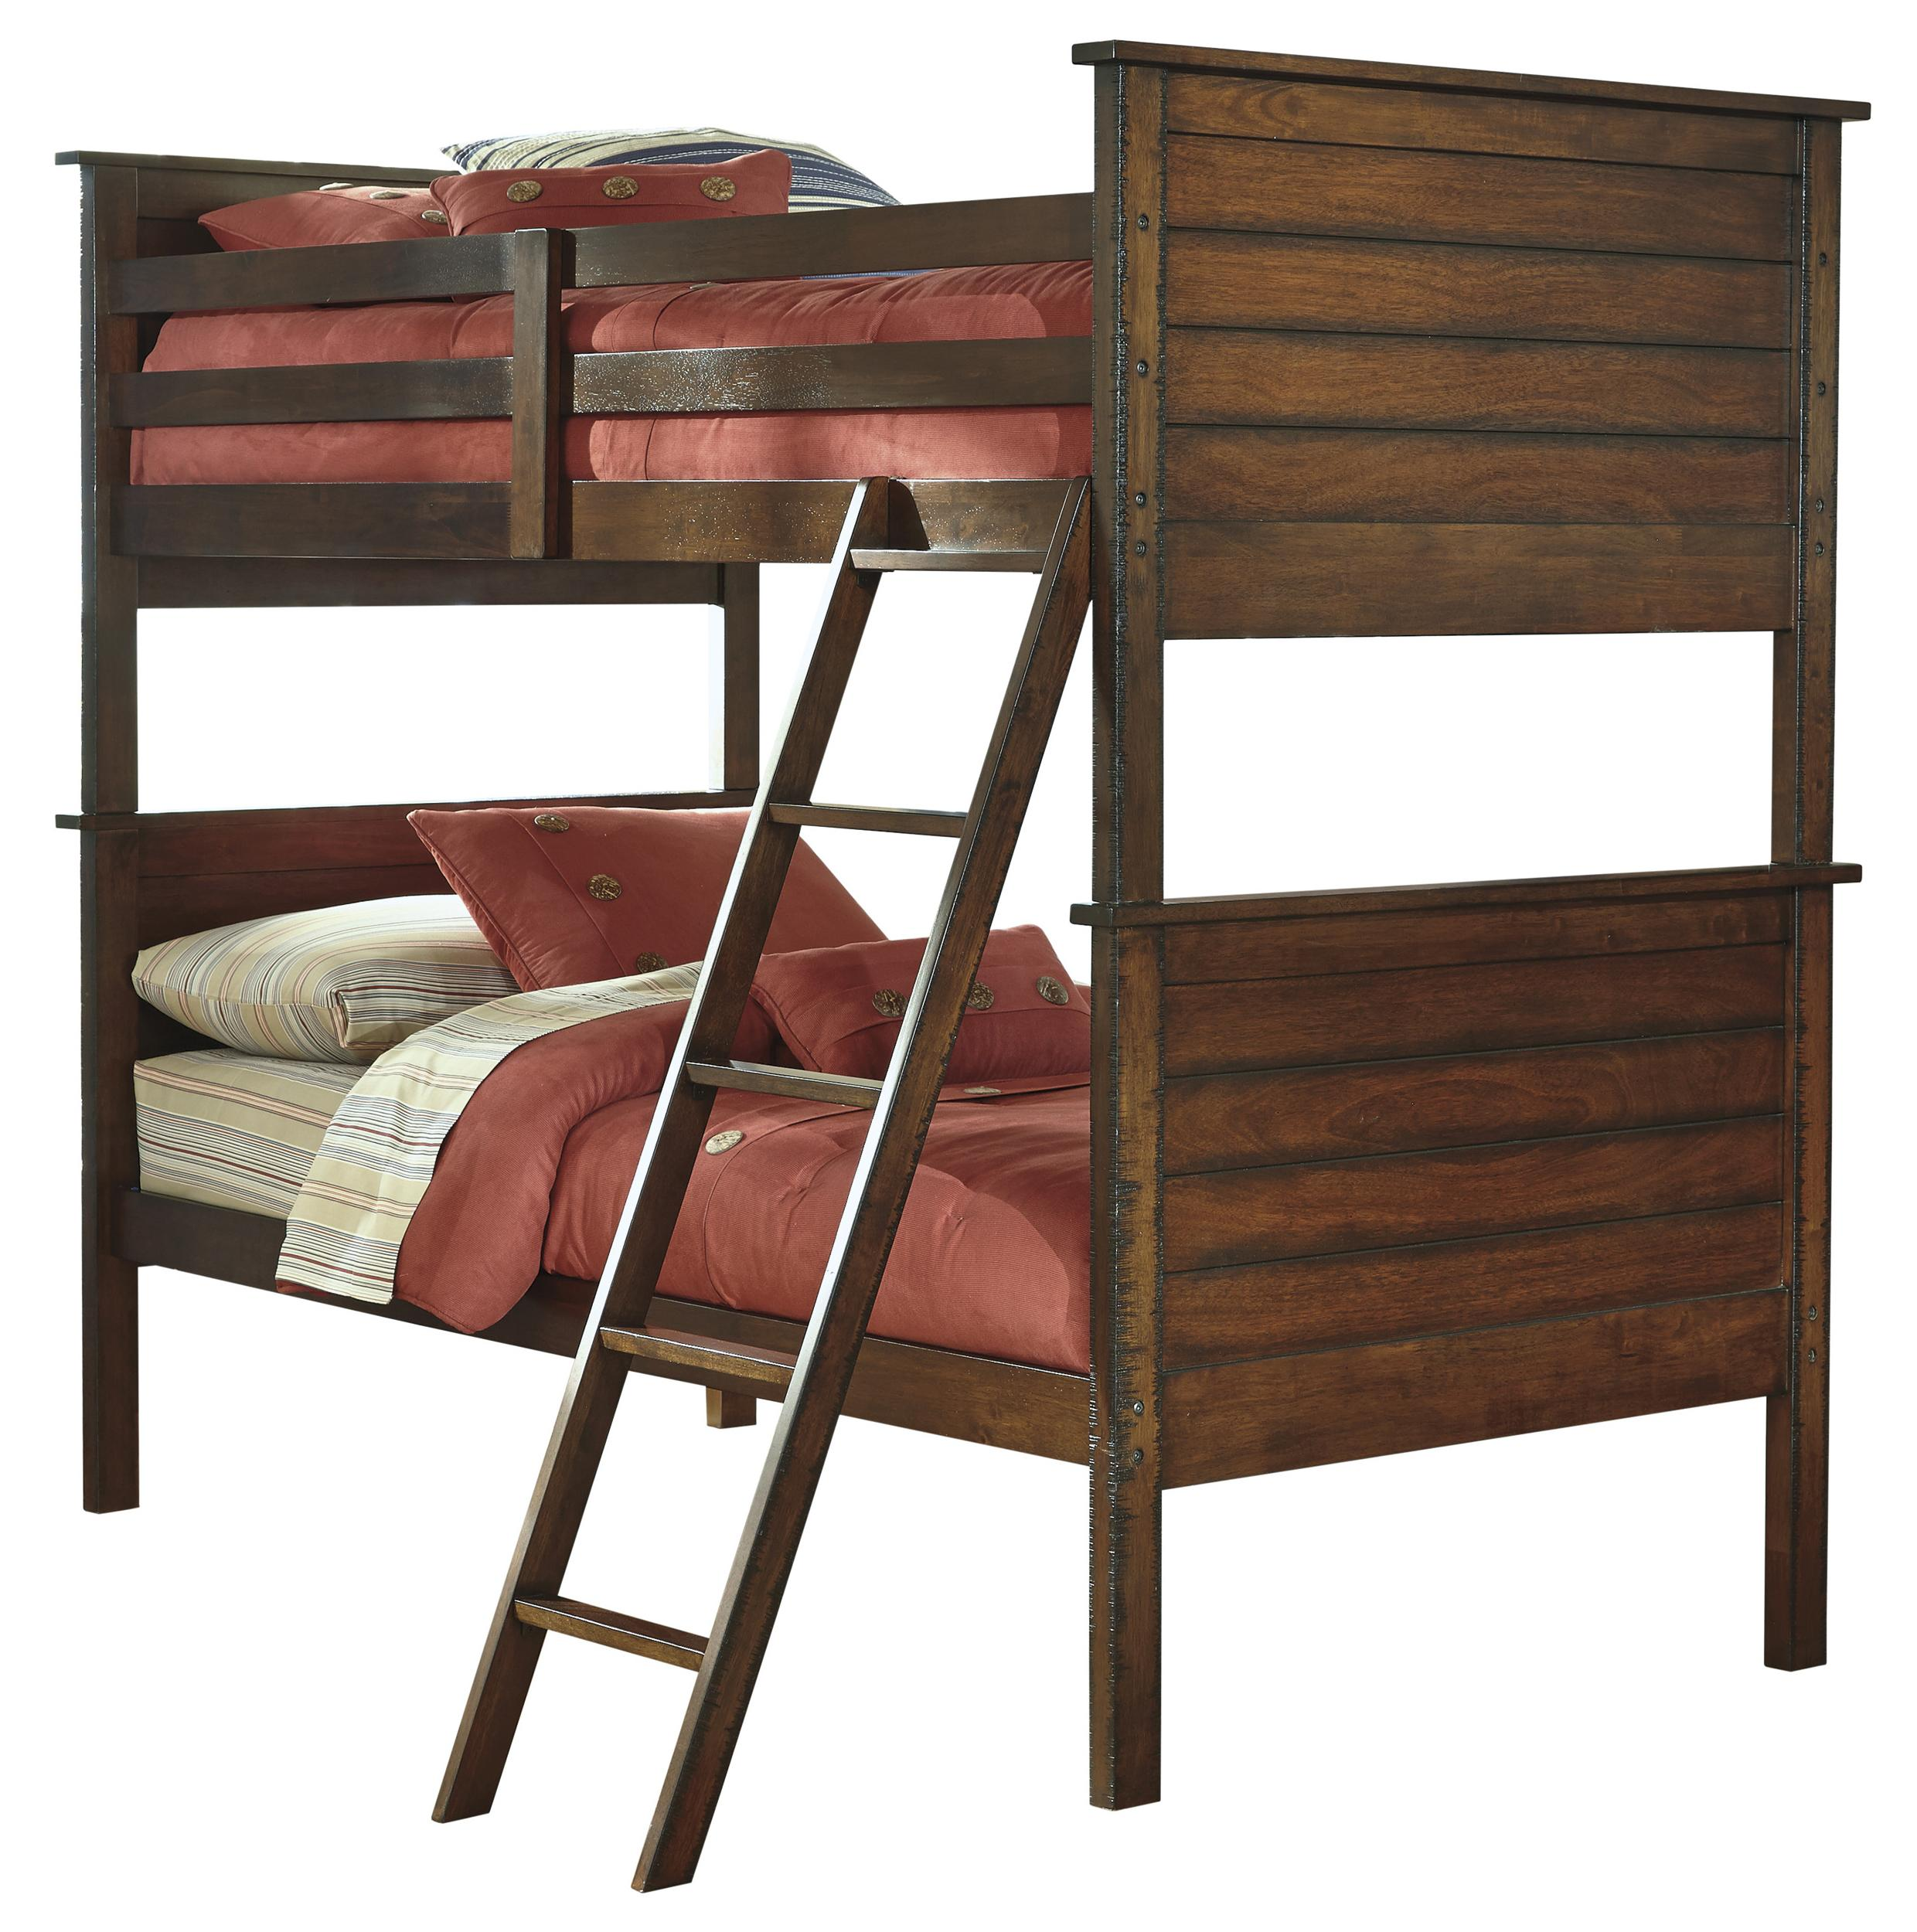 Signature Design by Ashley Ladiville Twin/Twin Bunk Bed - Item Number: B567-59P+59R+59S